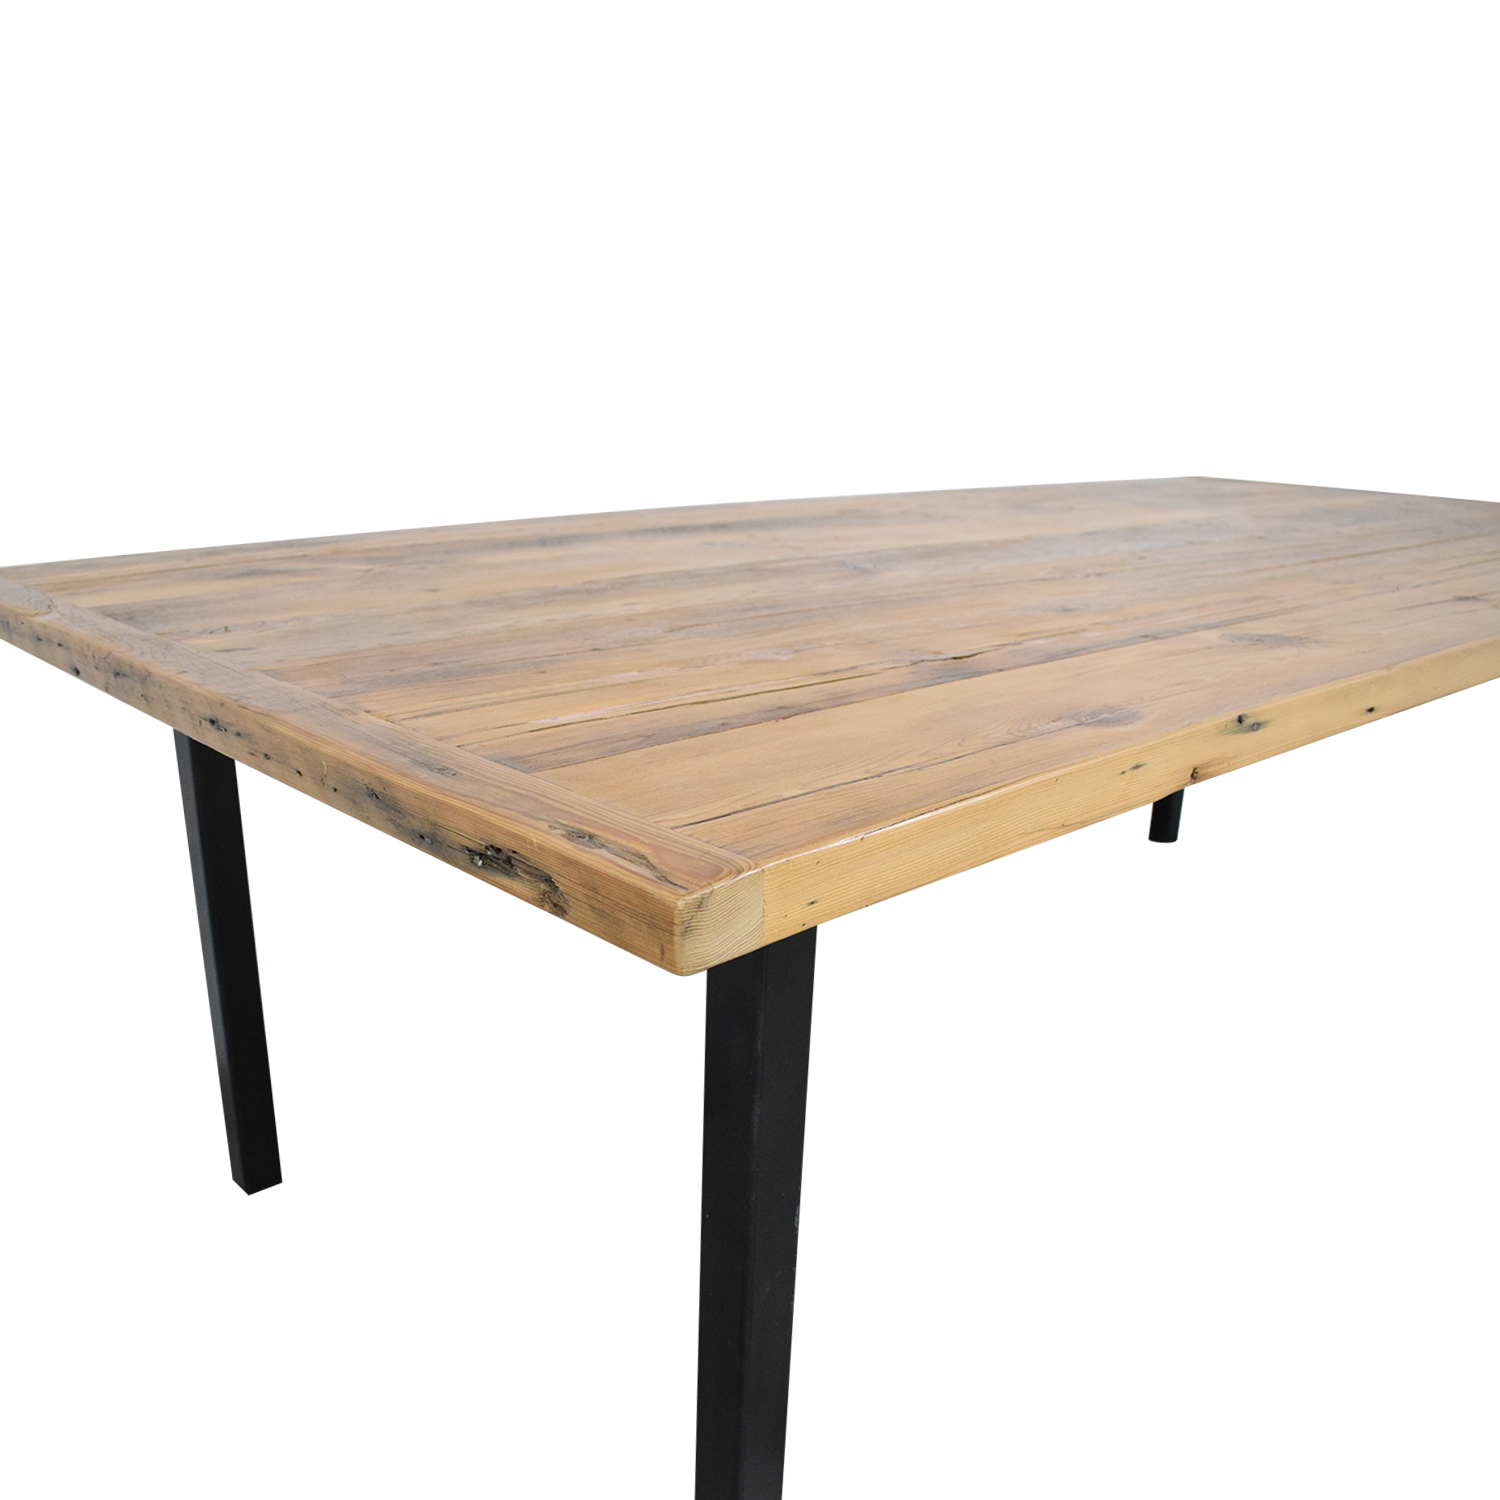 Reclaimed Wood Table coupon